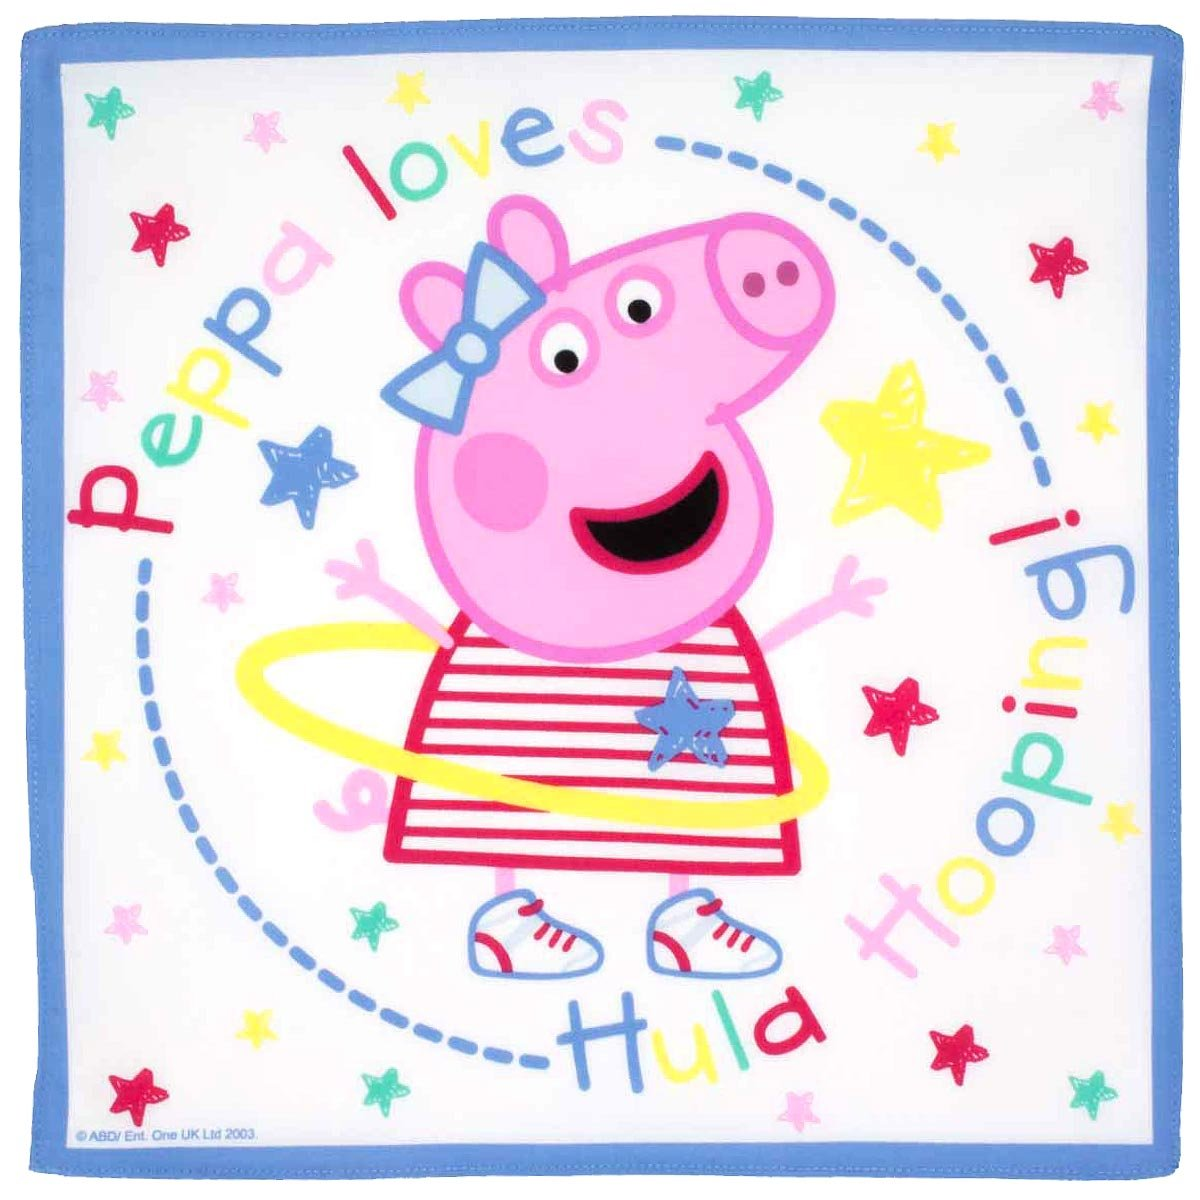 """Peppa Pig"" children's handkerchiefs - 14"" square - 3 units in a bag. Merrysquare"